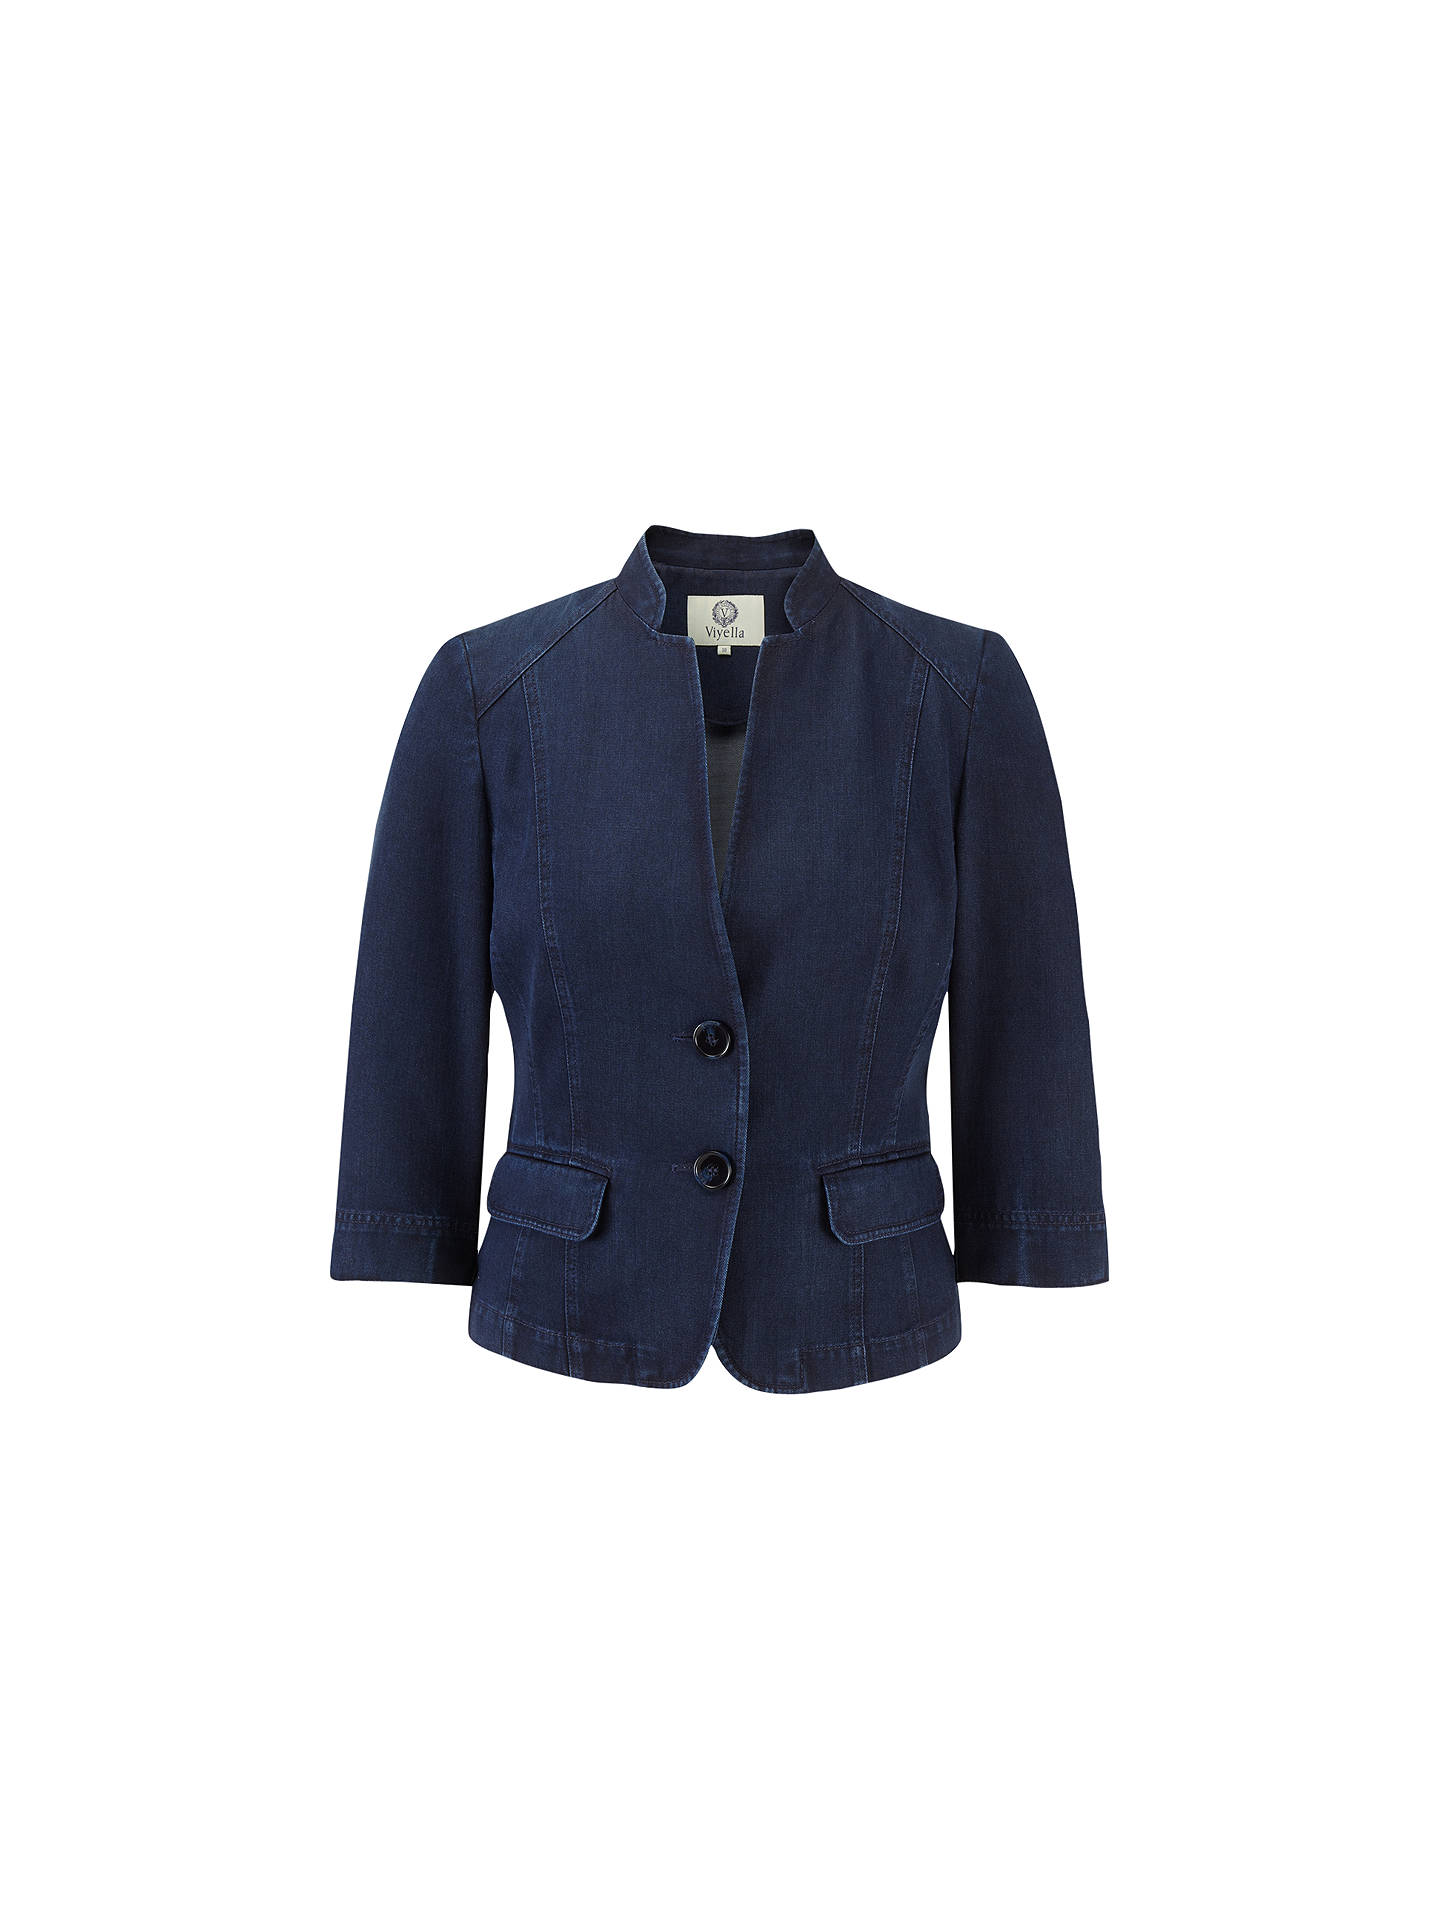 Viyella Denim Tencel Jacket Indigo At John Lewis Partners